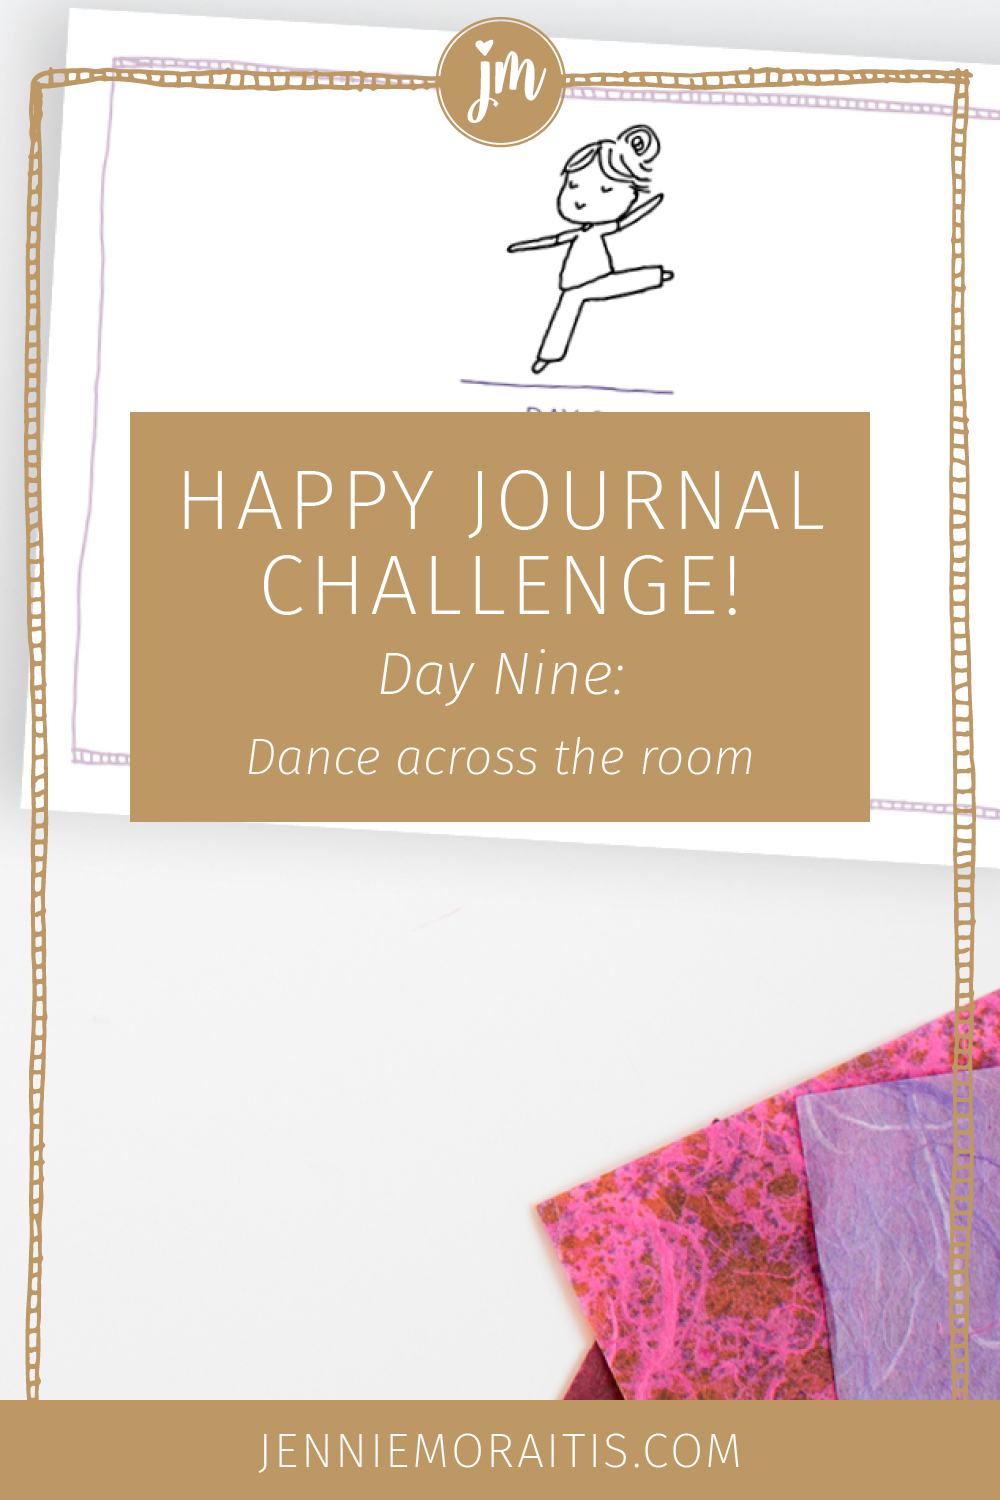 Welcome to day nine of our challenge! Today our challenge is to dance across the room. Now I don't mean you need to stand up at work and pirouette to the coffee maker. You totally can do this one in the comfort and safety of your own home.